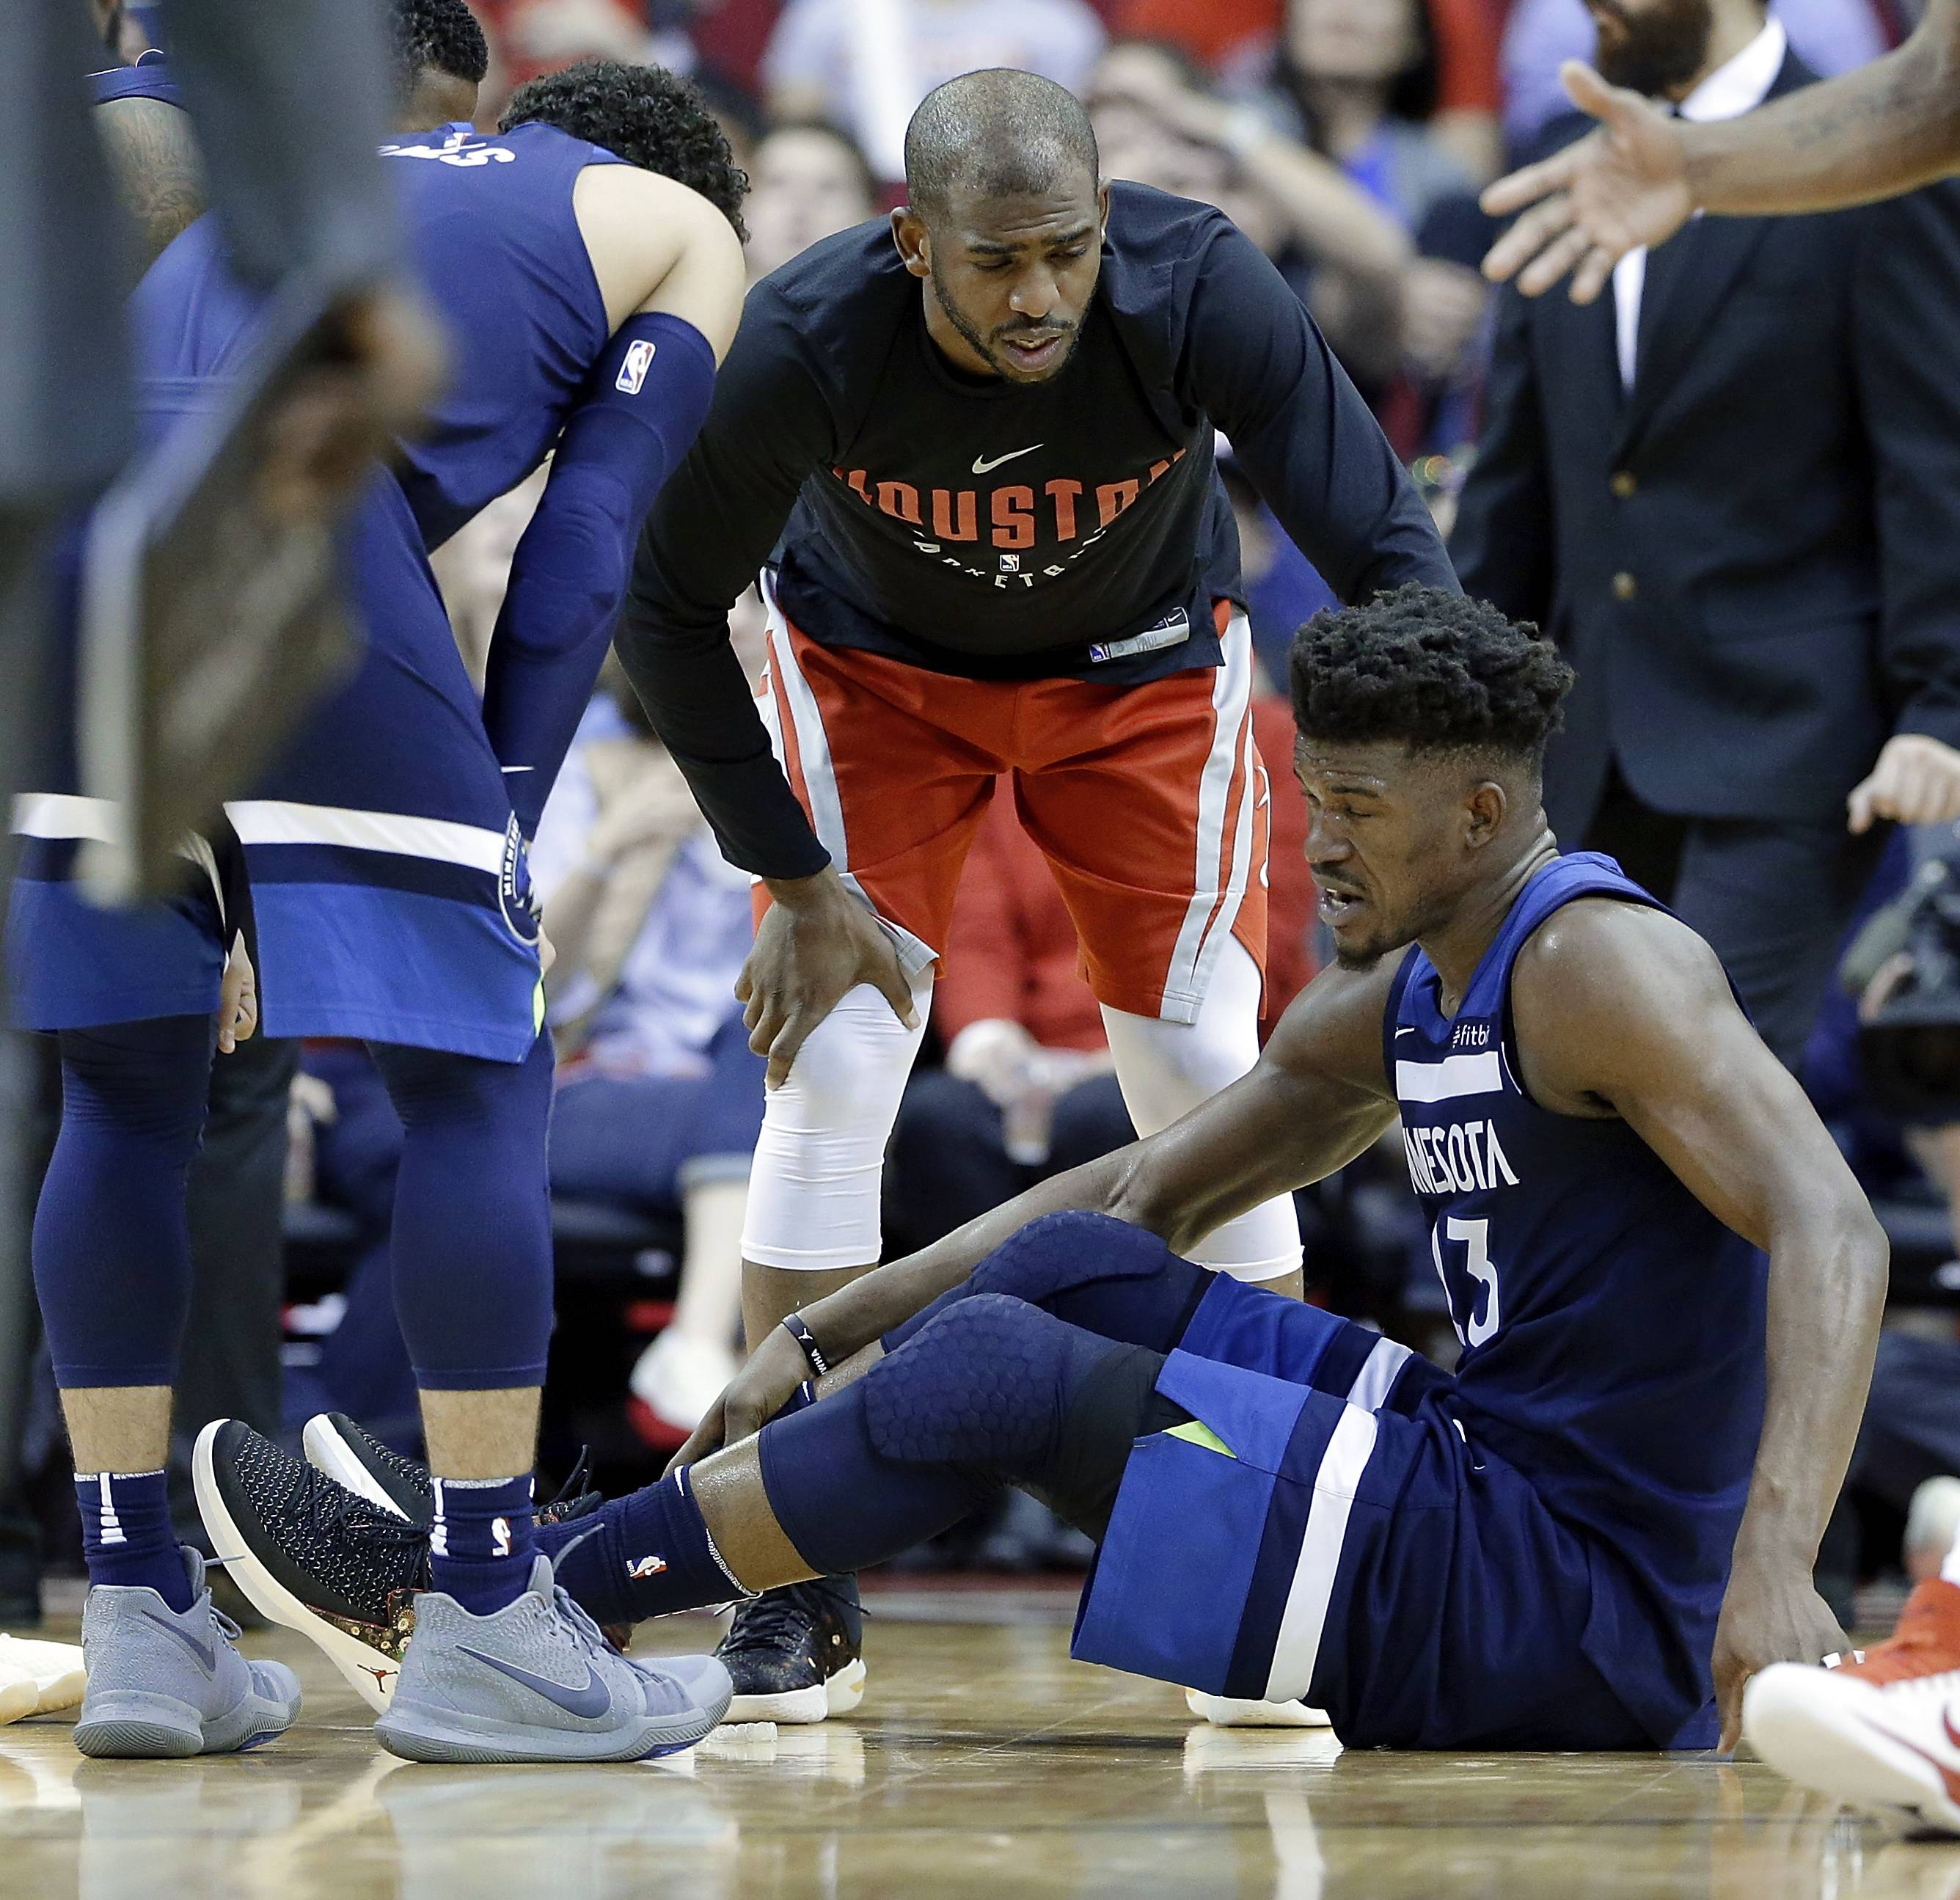 Timbewolves relieved Butler's injury wasn't worse